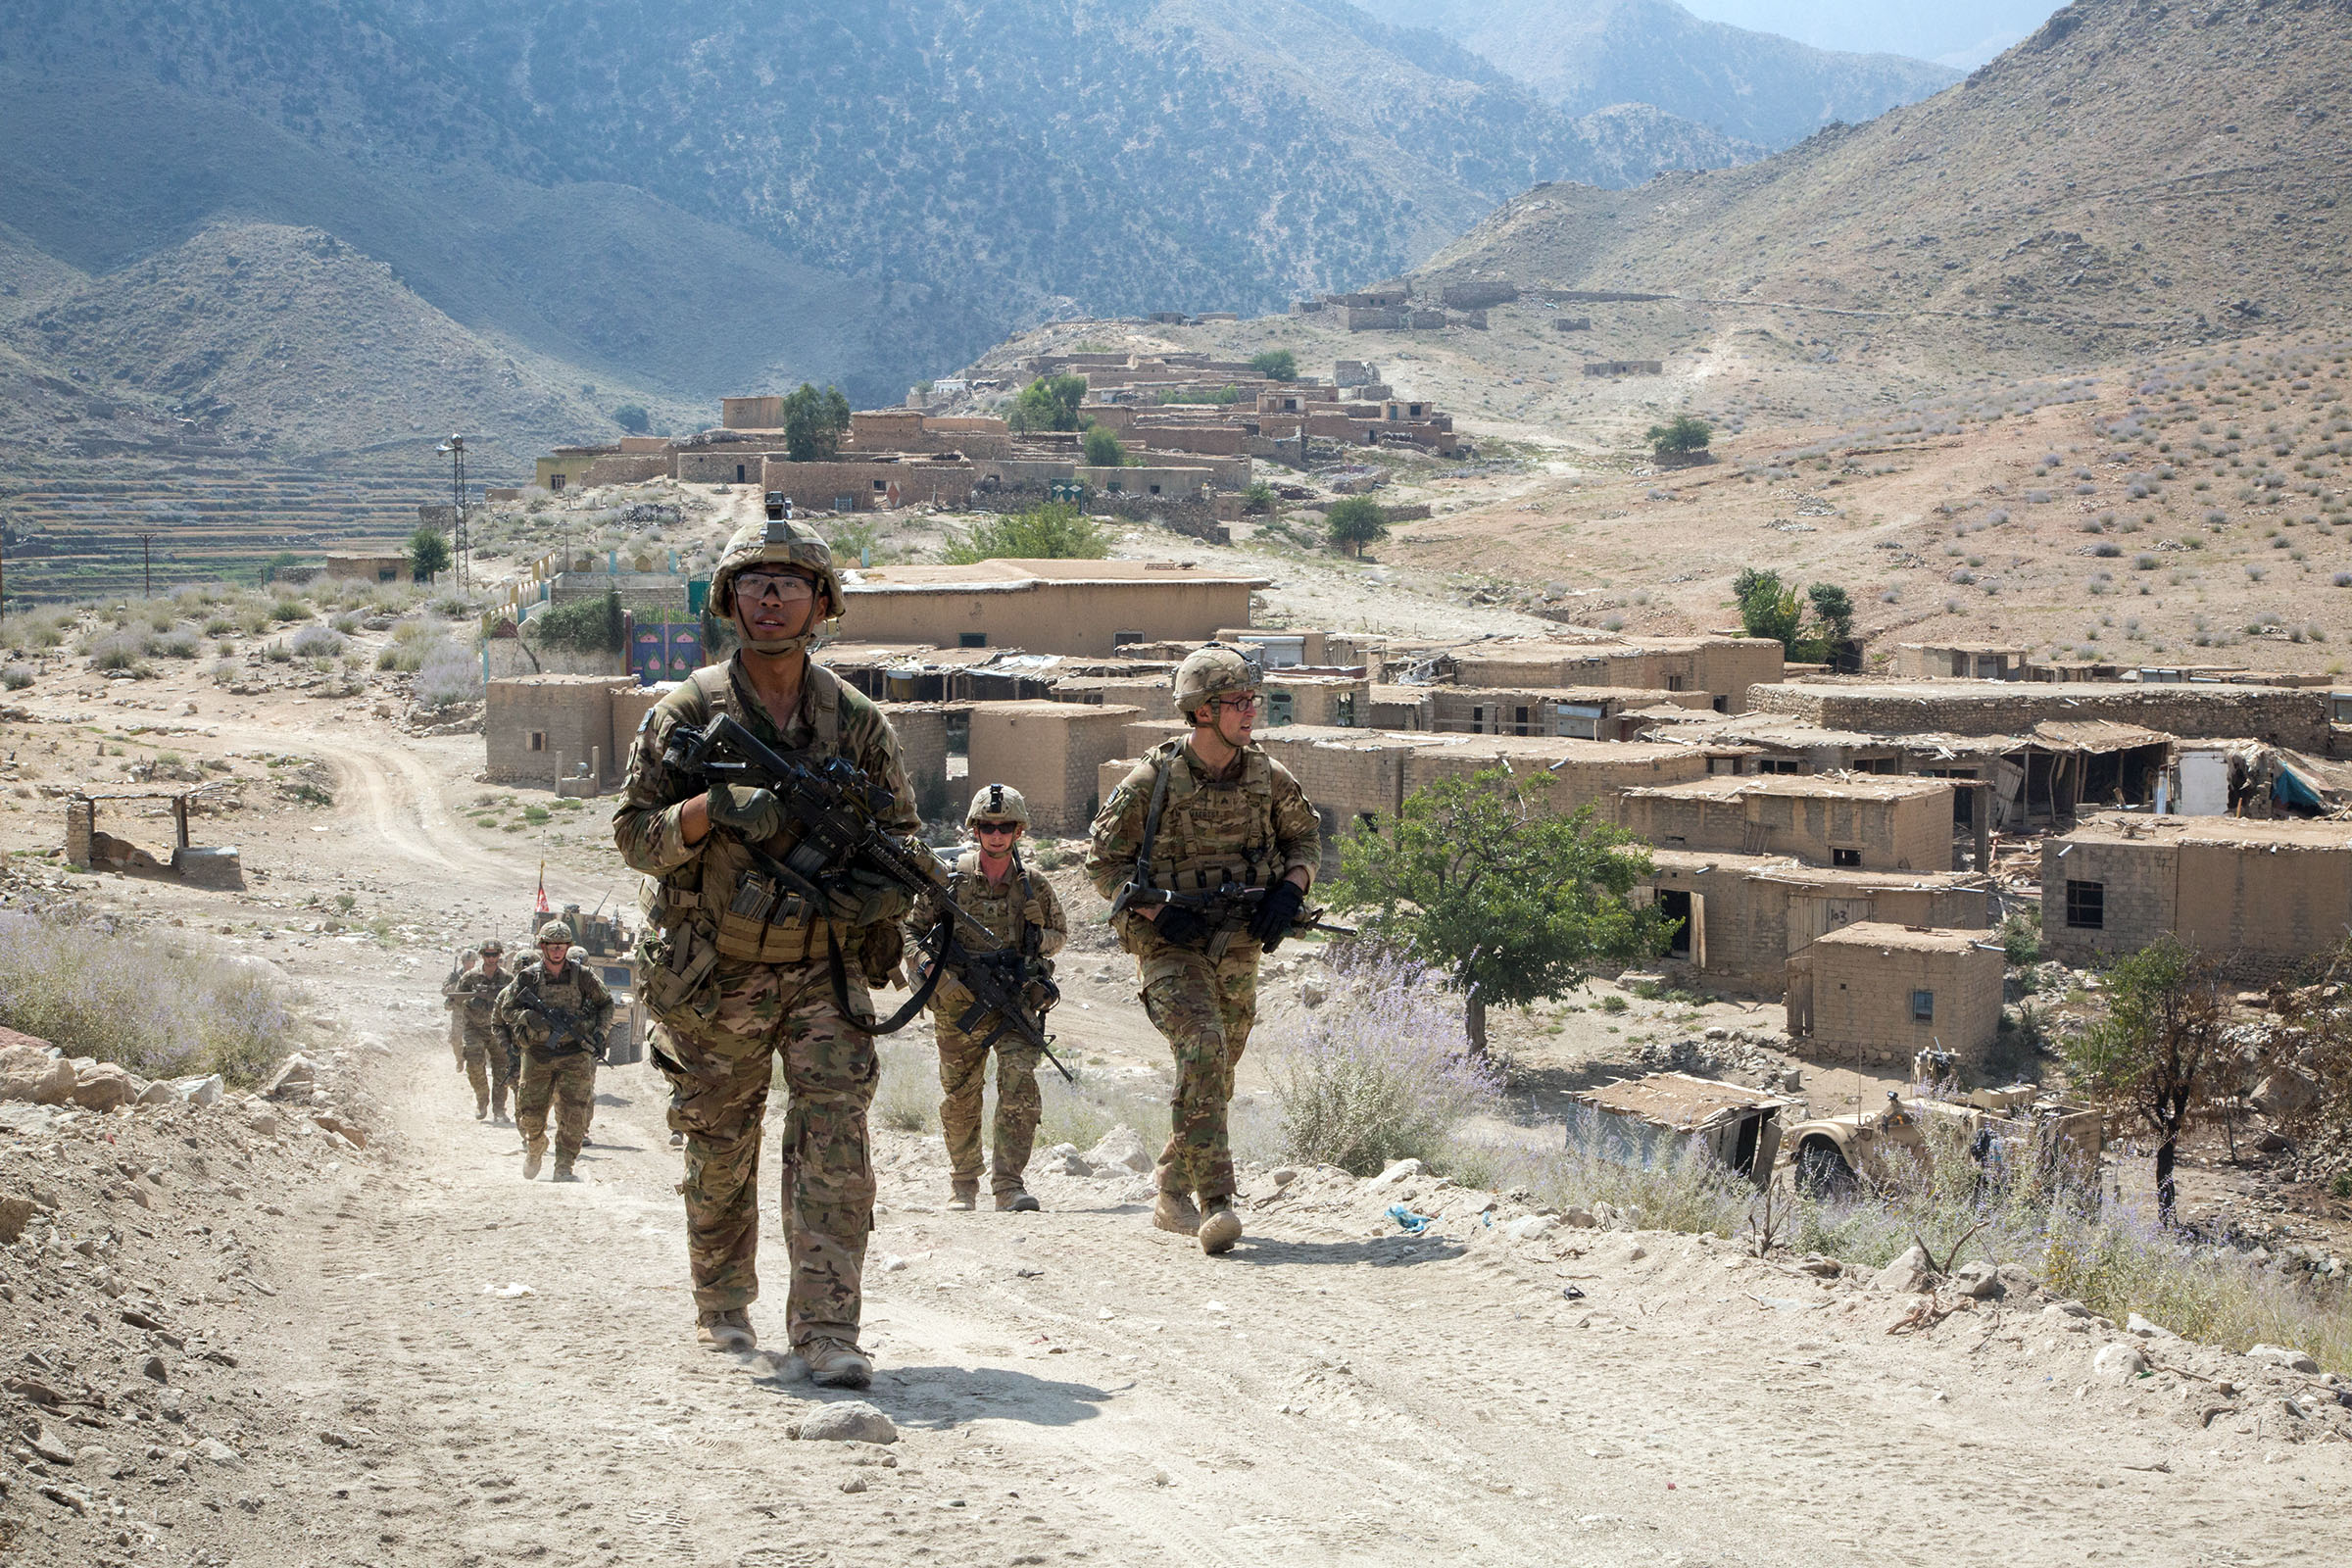 U.S. Paratroopers, assigned to 2nd Battalion, 501st Parachute Infantry Regiment, 1st Brigade Combat Team, 82nd Airborne Division, conduct a tactical ground movement through Pekha Valley, Achin District, Nangahar Province, Afghanistan, Sept. 3, 2017. The Paratroopers moved to an observation post to provide base defense. (U.S. Army photo by Cpl. Matthew DeVirgilio)